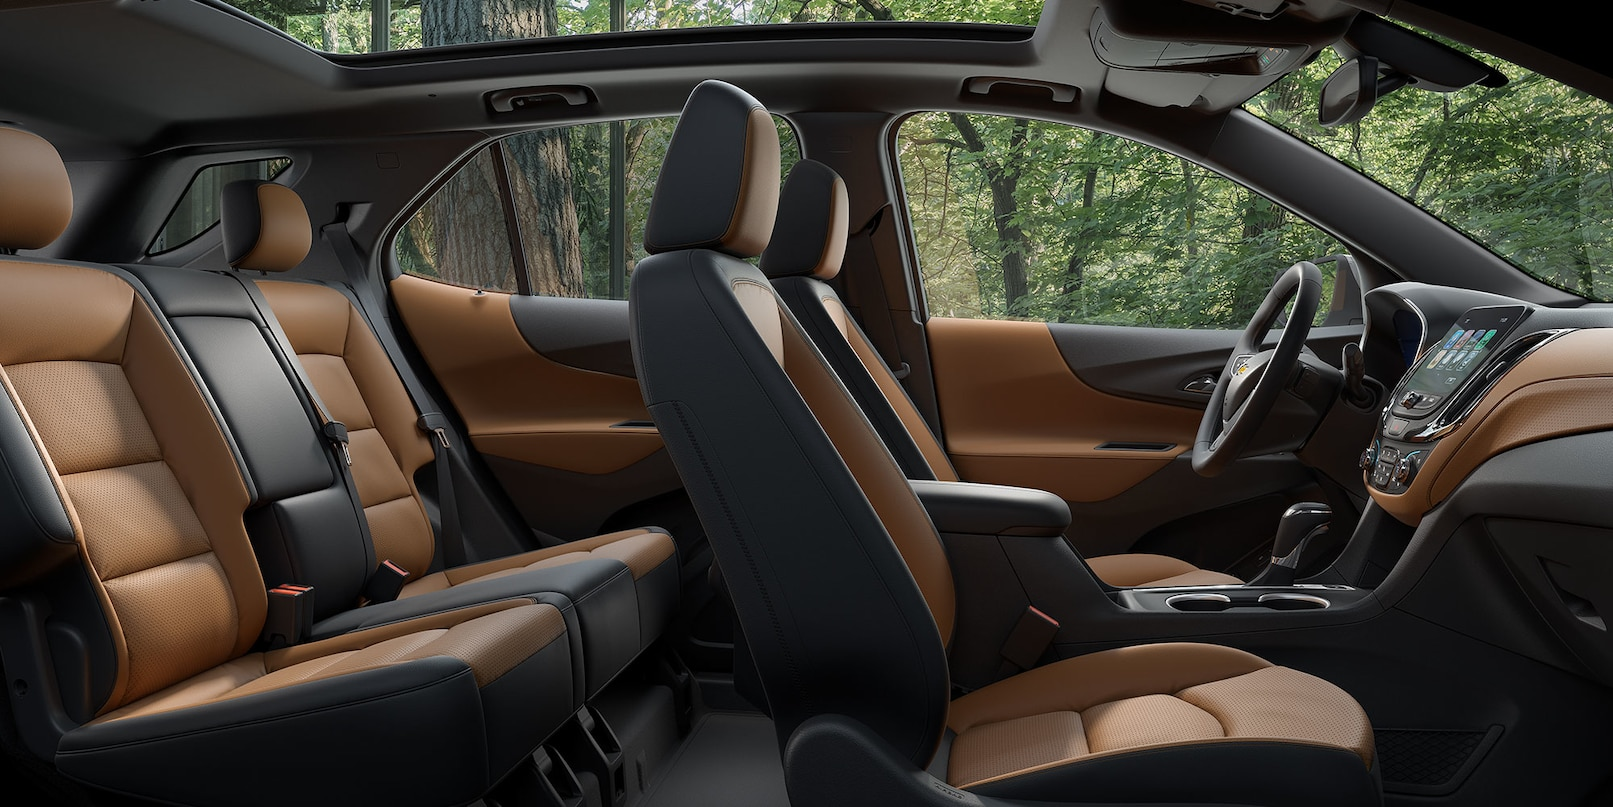 Spacious Cabin in the 2018 Equinox